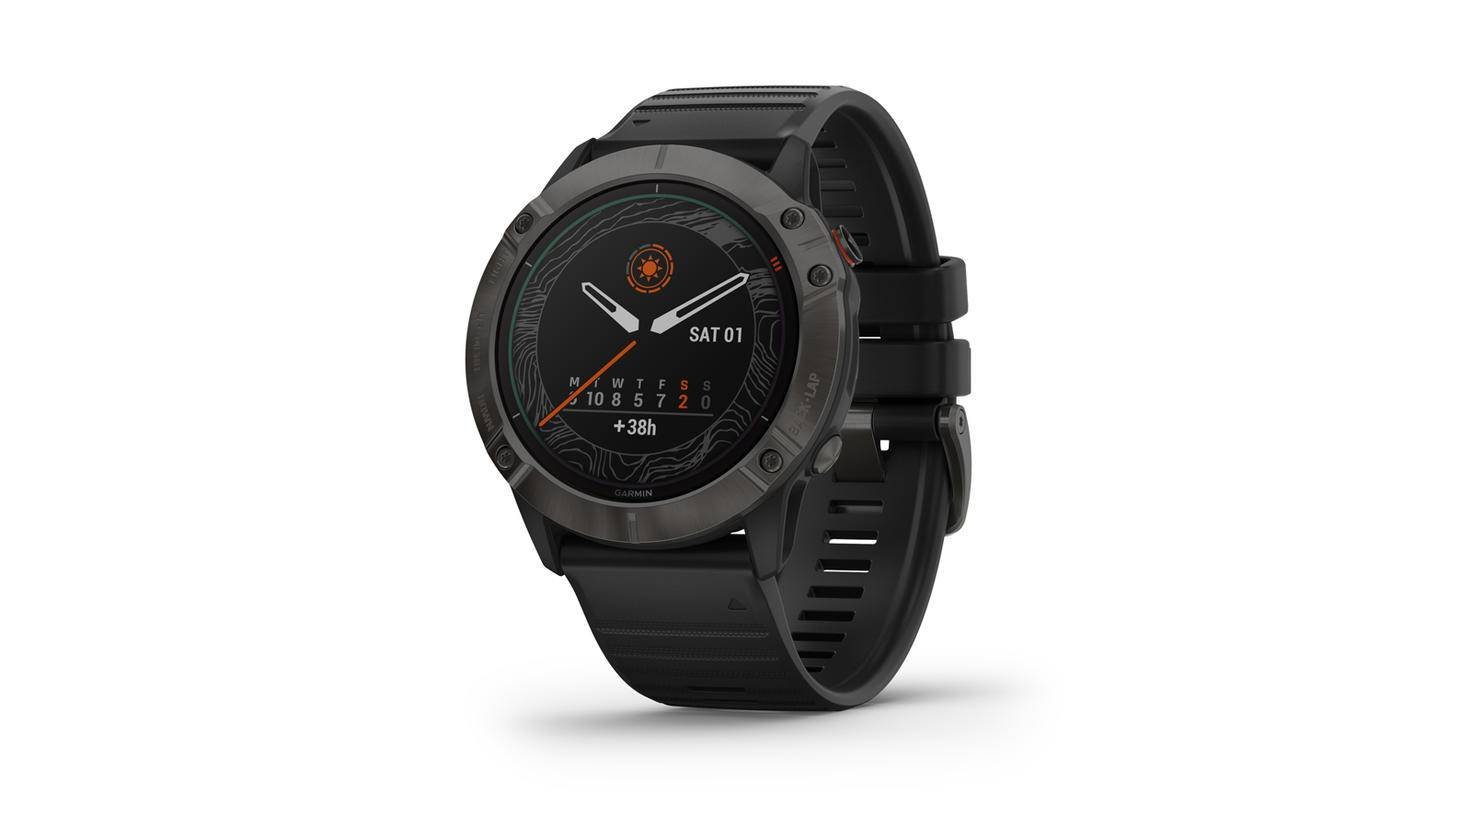 Garmin Fenix 6 pro solar schwarz display